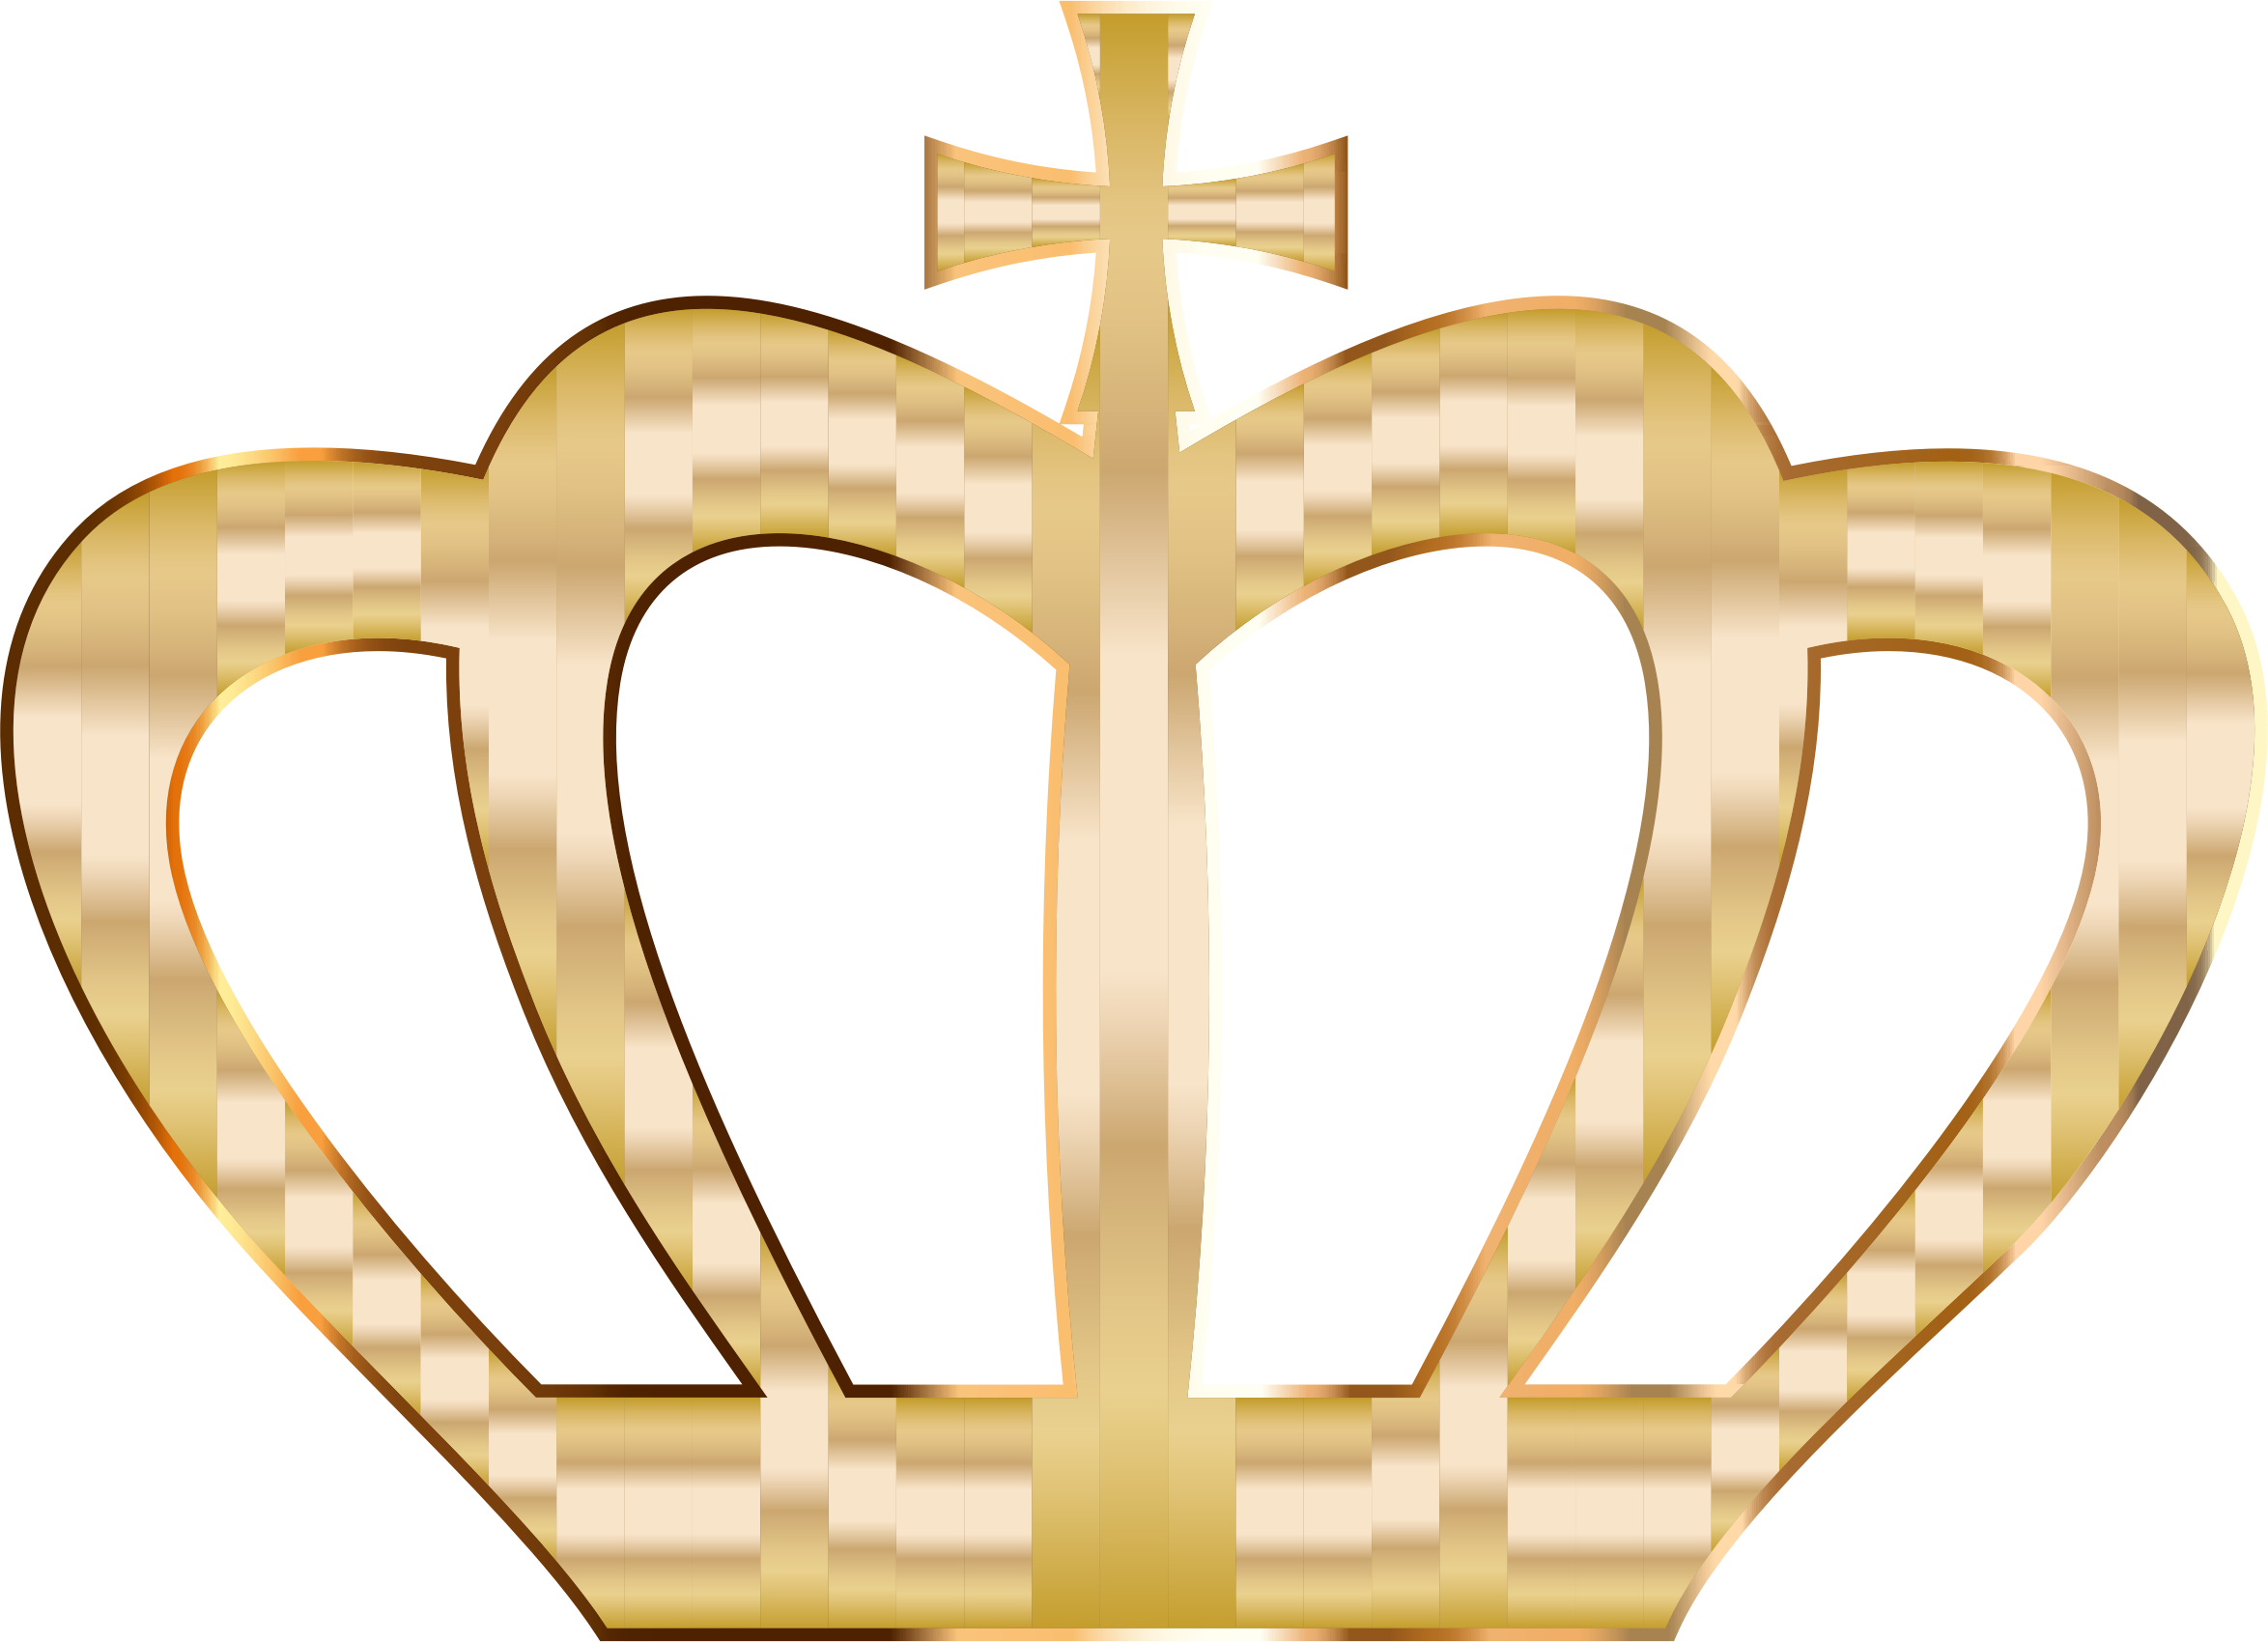 Transparent gold glitter crown clipart - Clip Arts Related To - Gold Heart With Crown